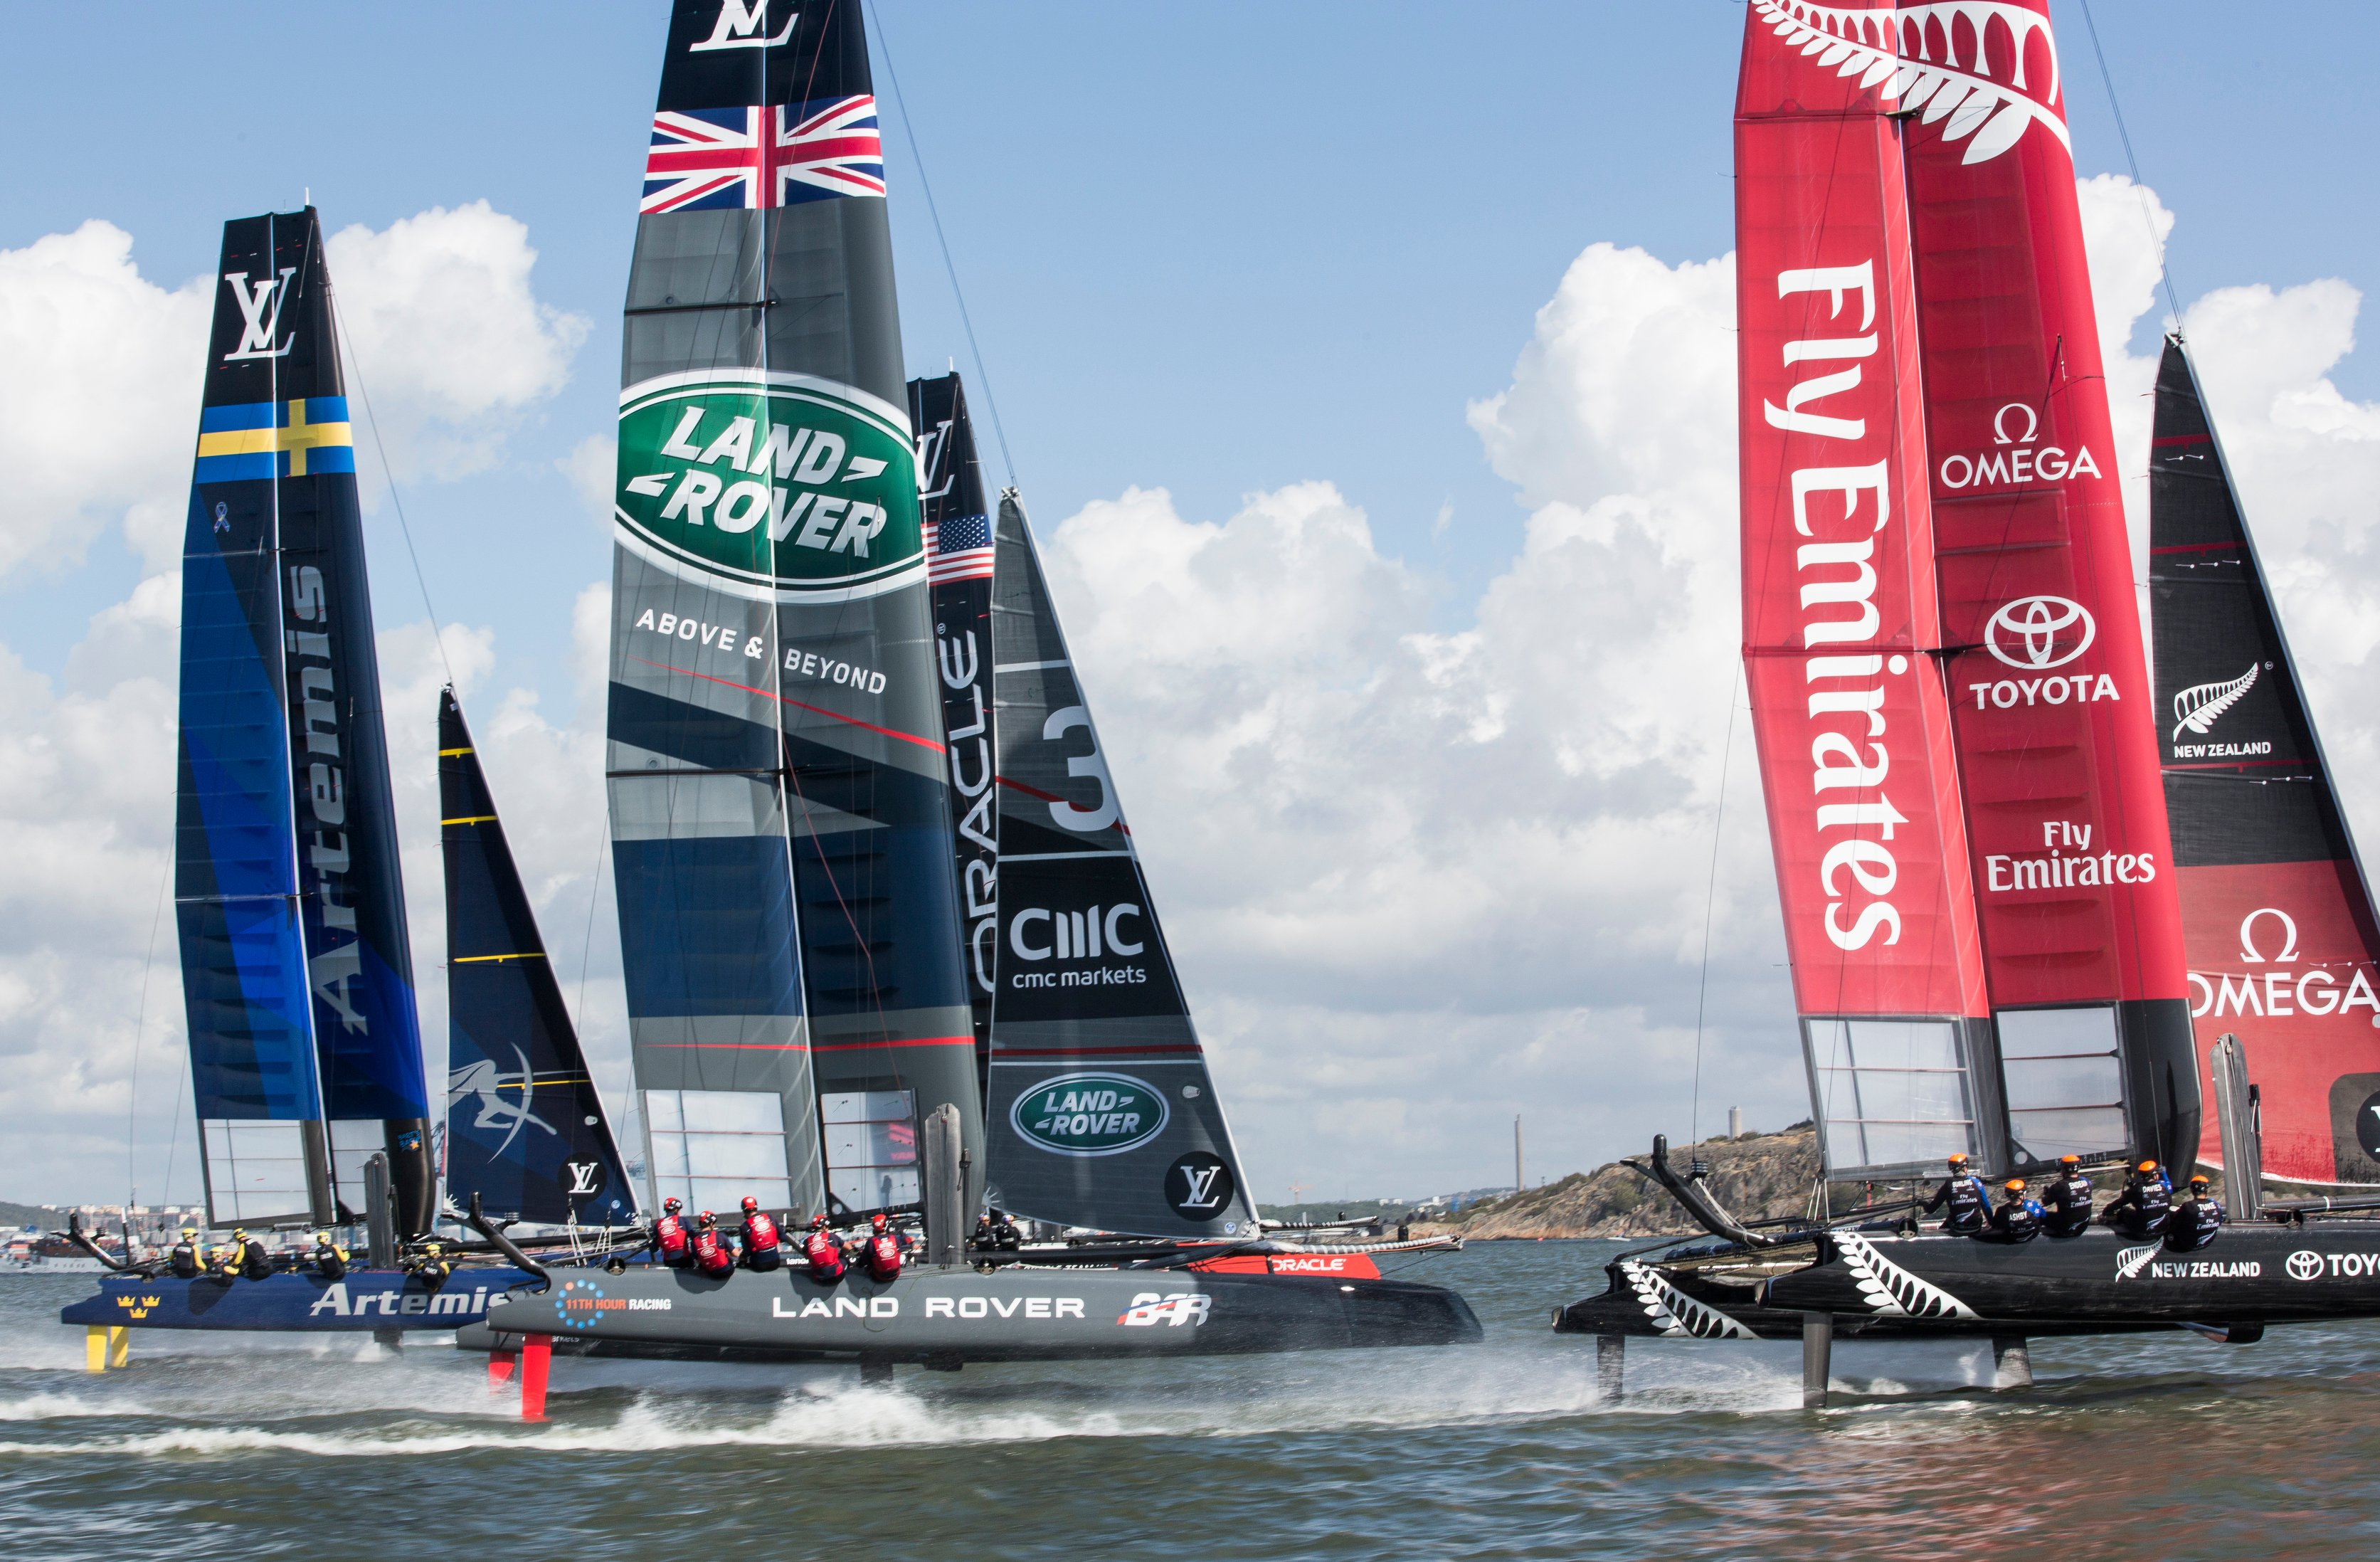 Land Rover, Omega, Fly Emirates, LV, and other various sponsors at the 35th America's Cup.